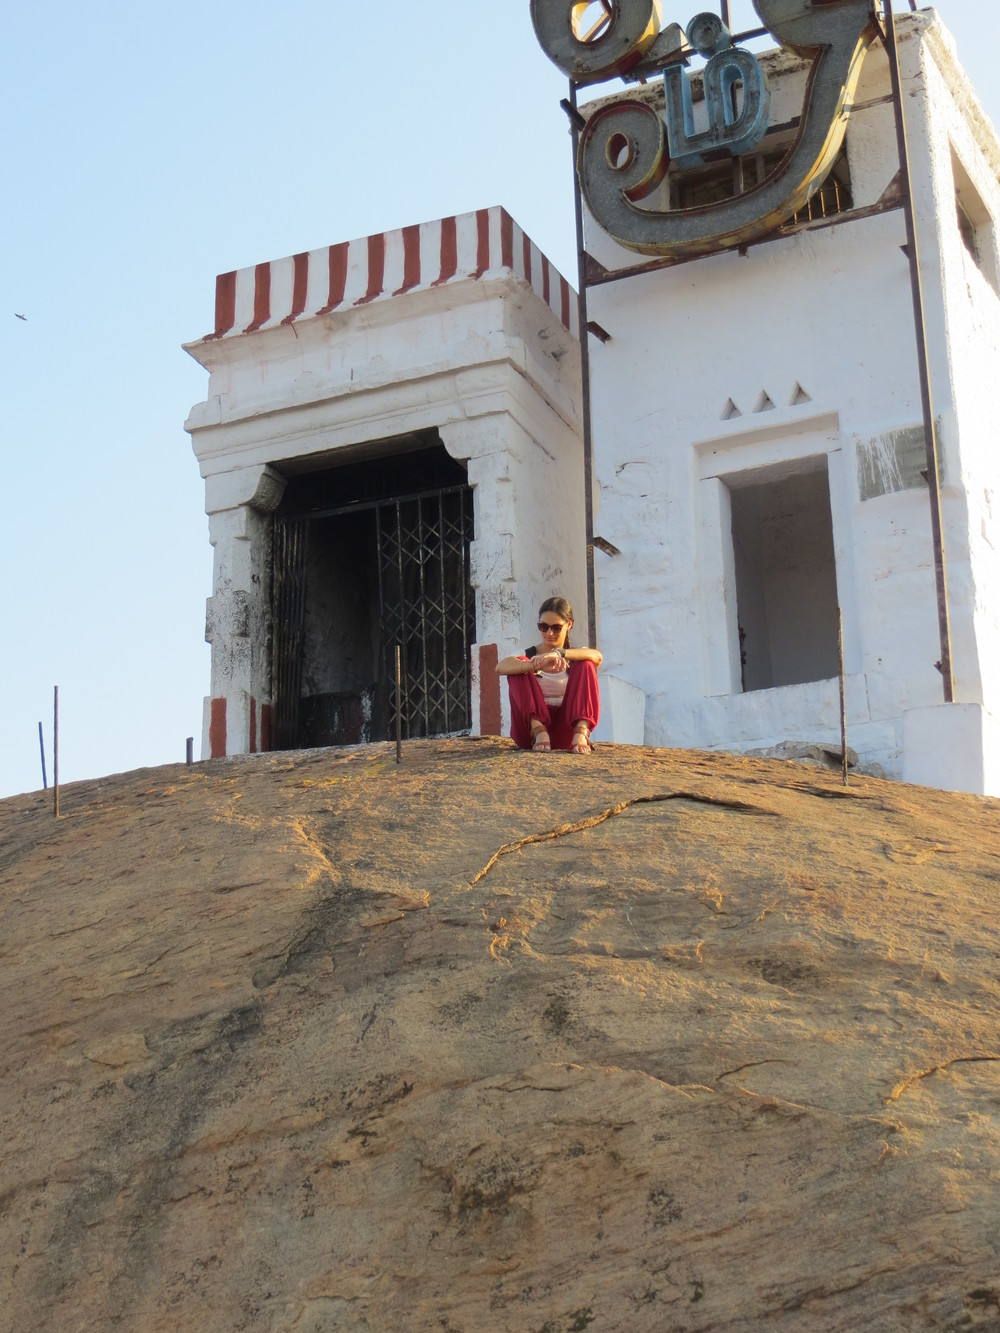 The Hindu temple that marked the halfway point on the trek up the mountain